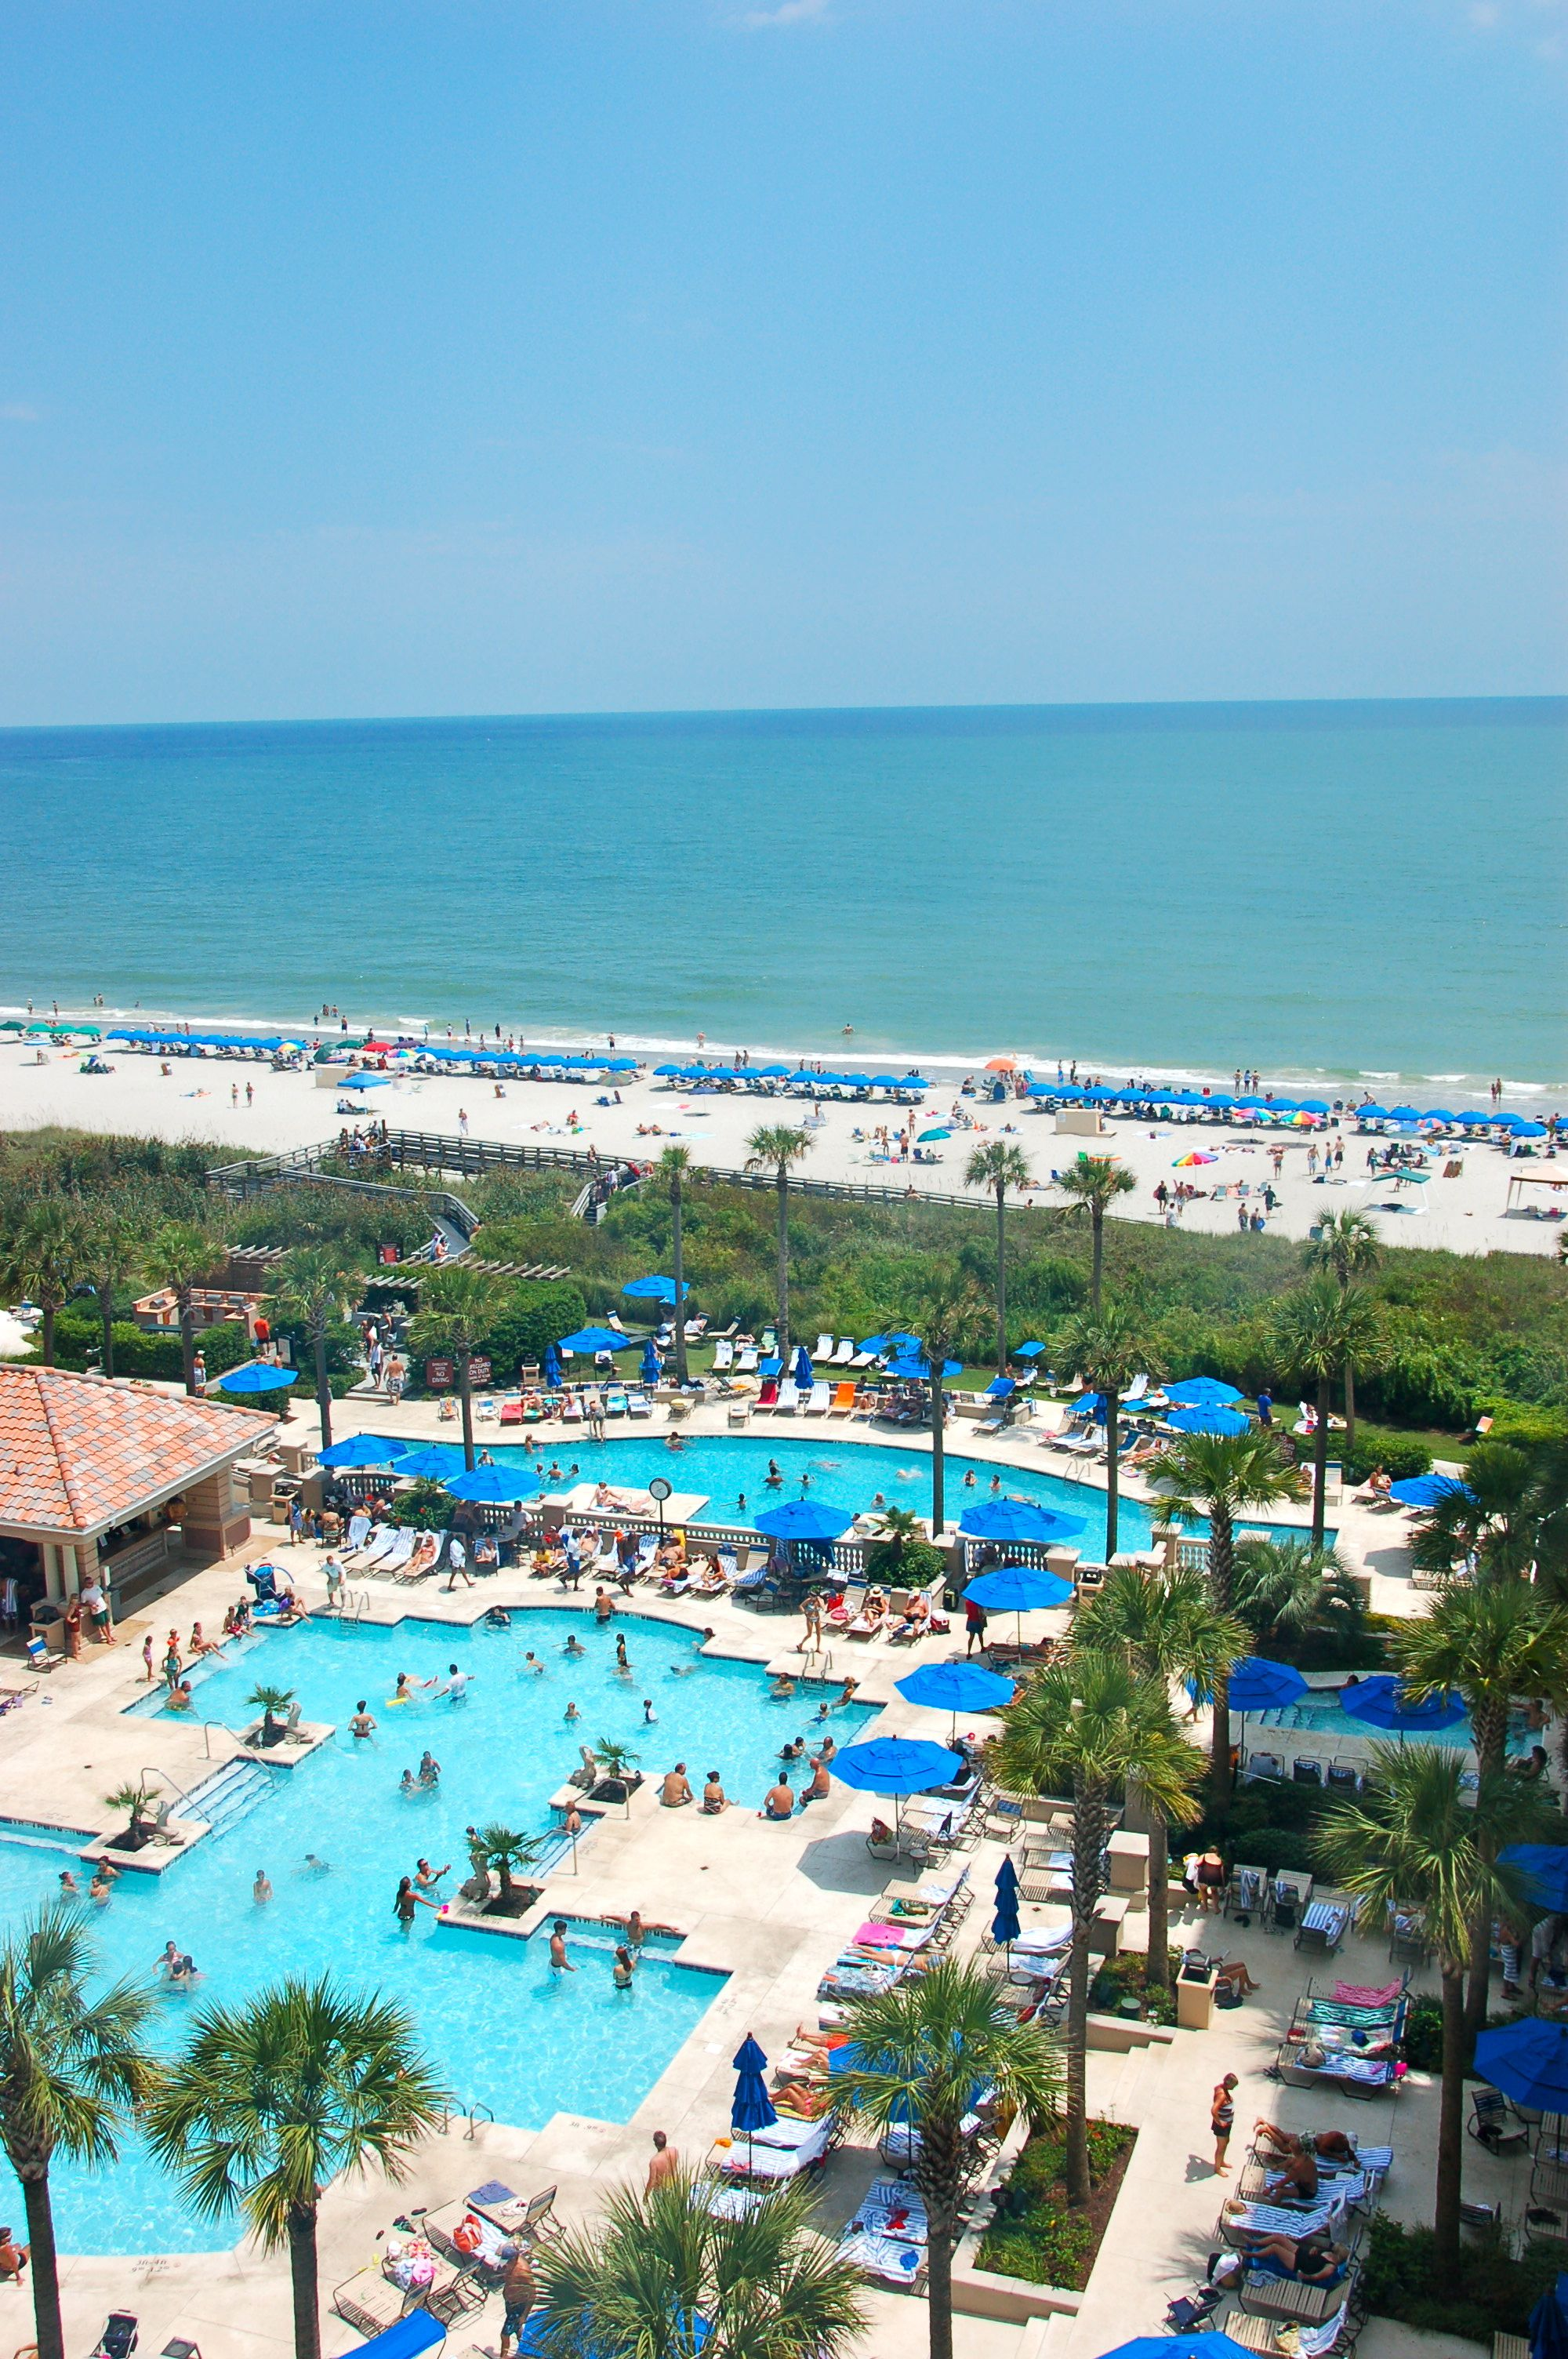 Marriott Resort And Spa At Grand Dunes Myrtle Beach South Carolina